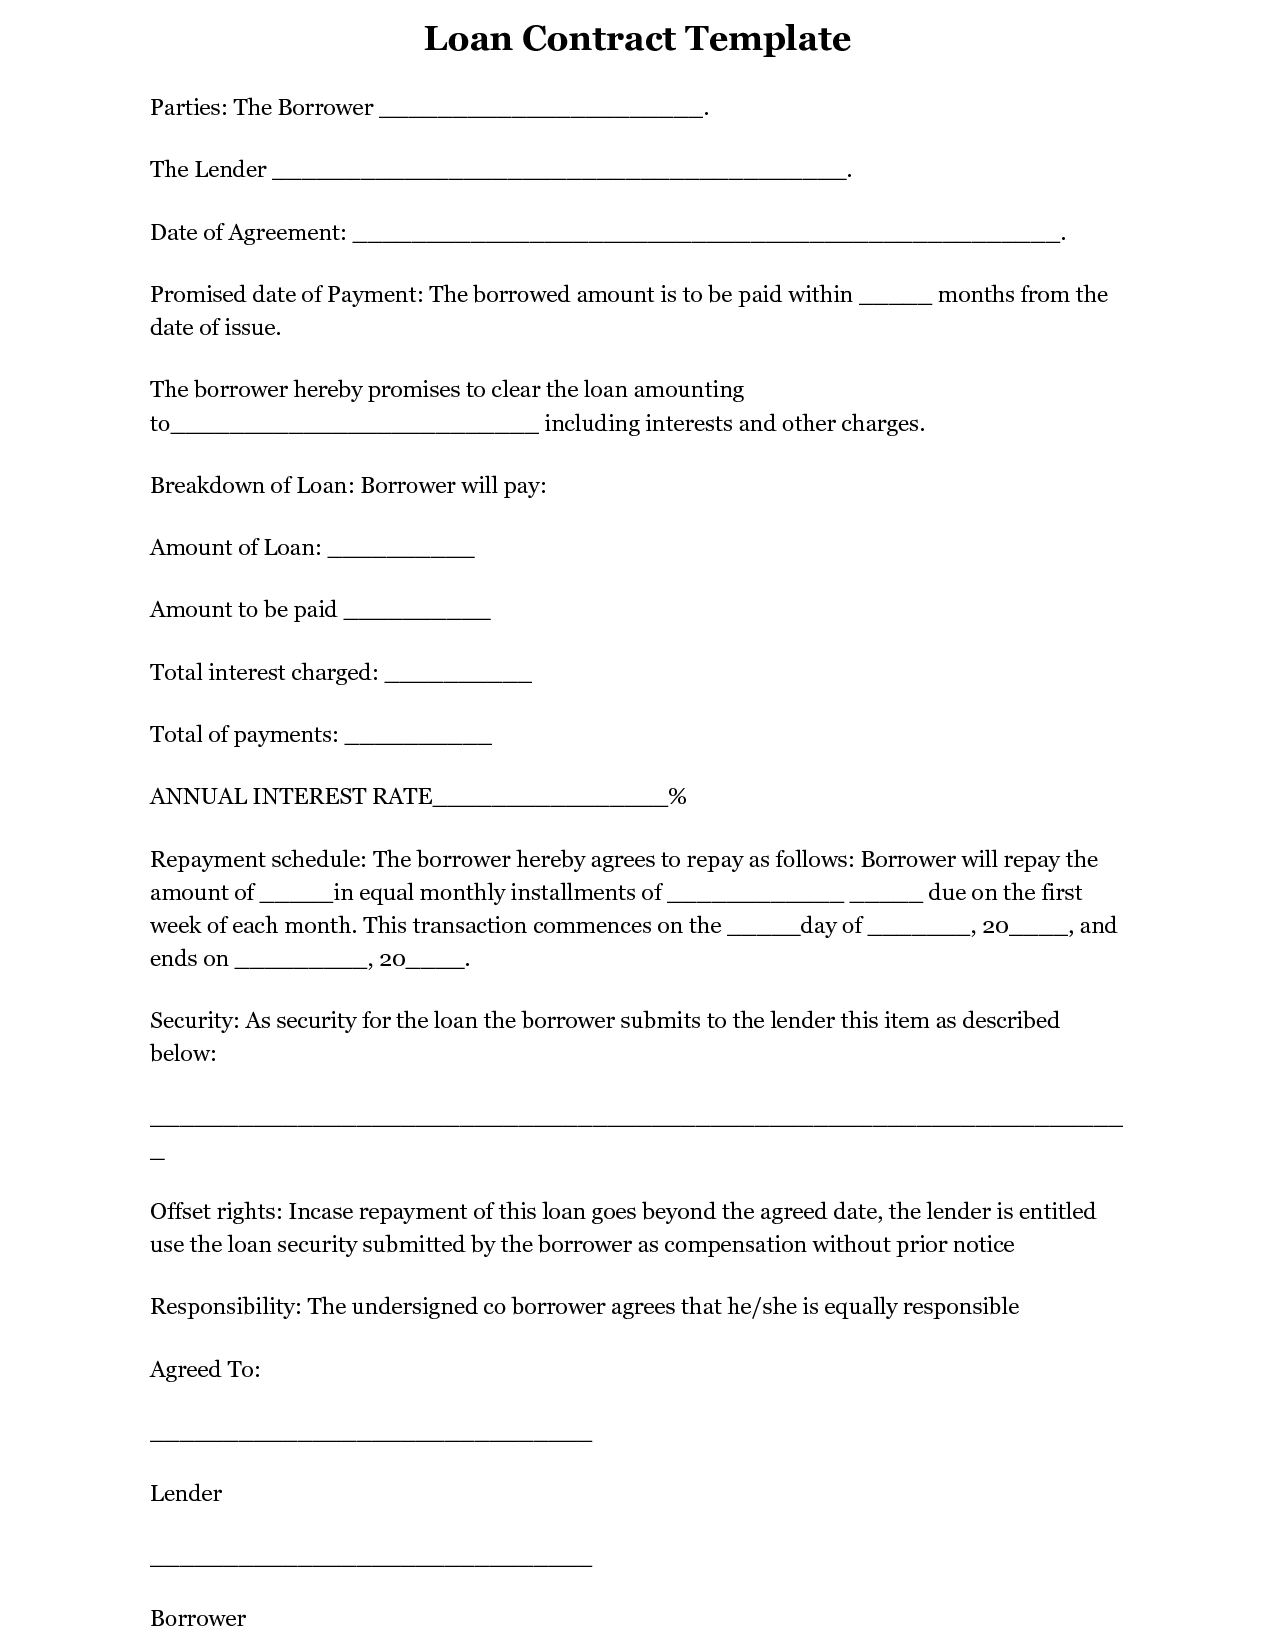 High Quality Simple Loan Agreement Form Free Loan Contract Template 26 Examples In Word  Pdf Free, Commercial Loan Agreement Template Loan Agreement Form Template,  ... Intended For Loan Agreement Form Free